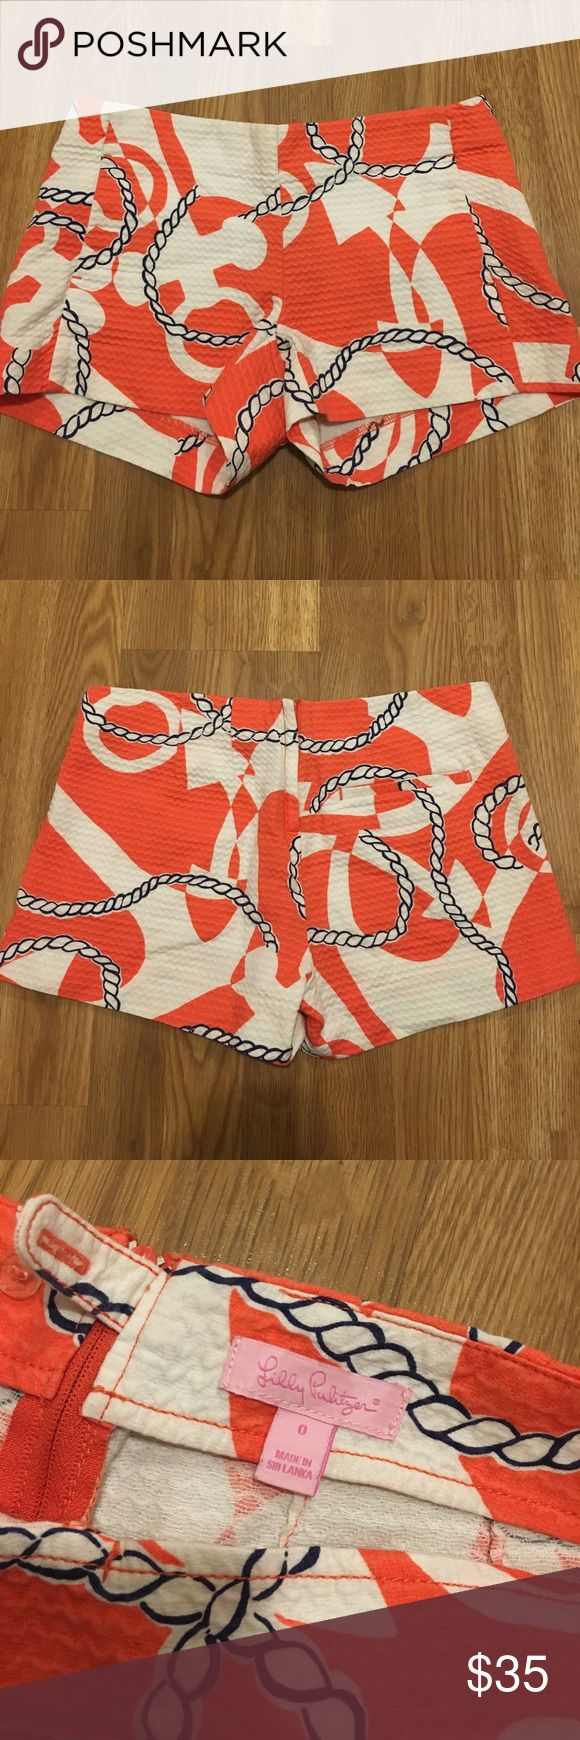 Lilly Pulitzer Anchor Shorts never worn, no tags. great condition: size 0 Lilly Pulitzer Shorts